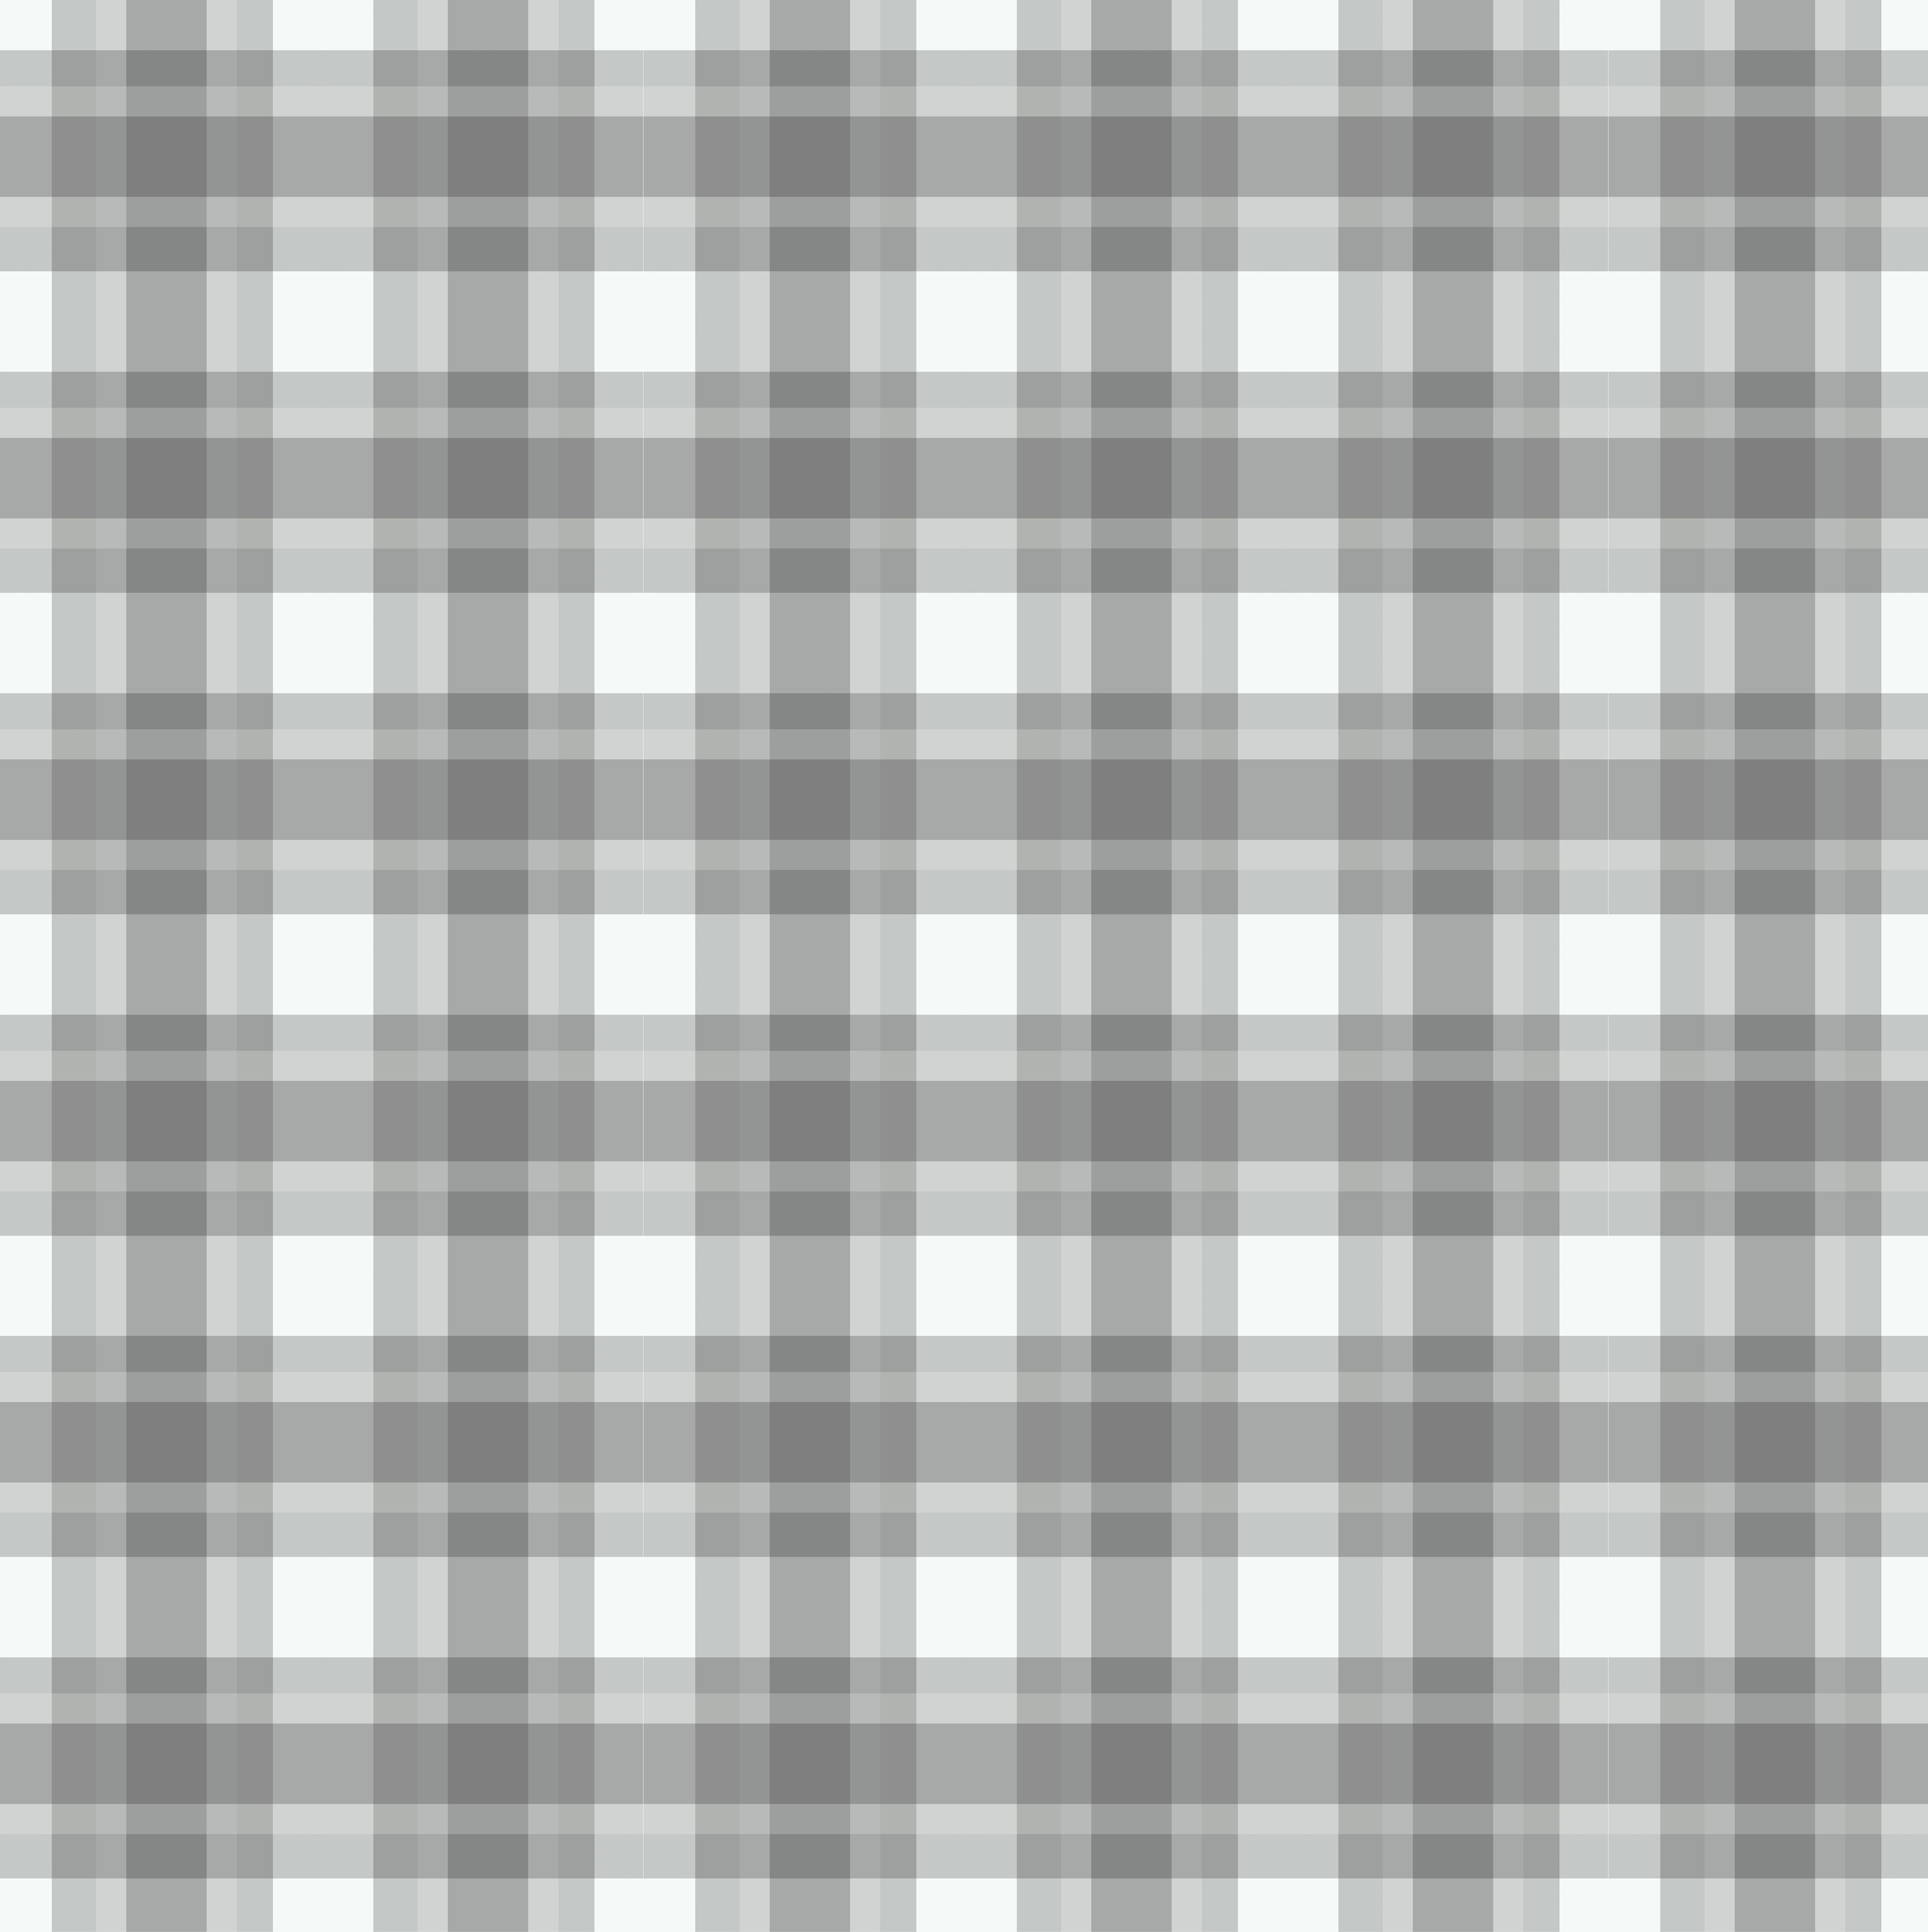 Textured vector plaid pattern background 683635   Download 4490x4500